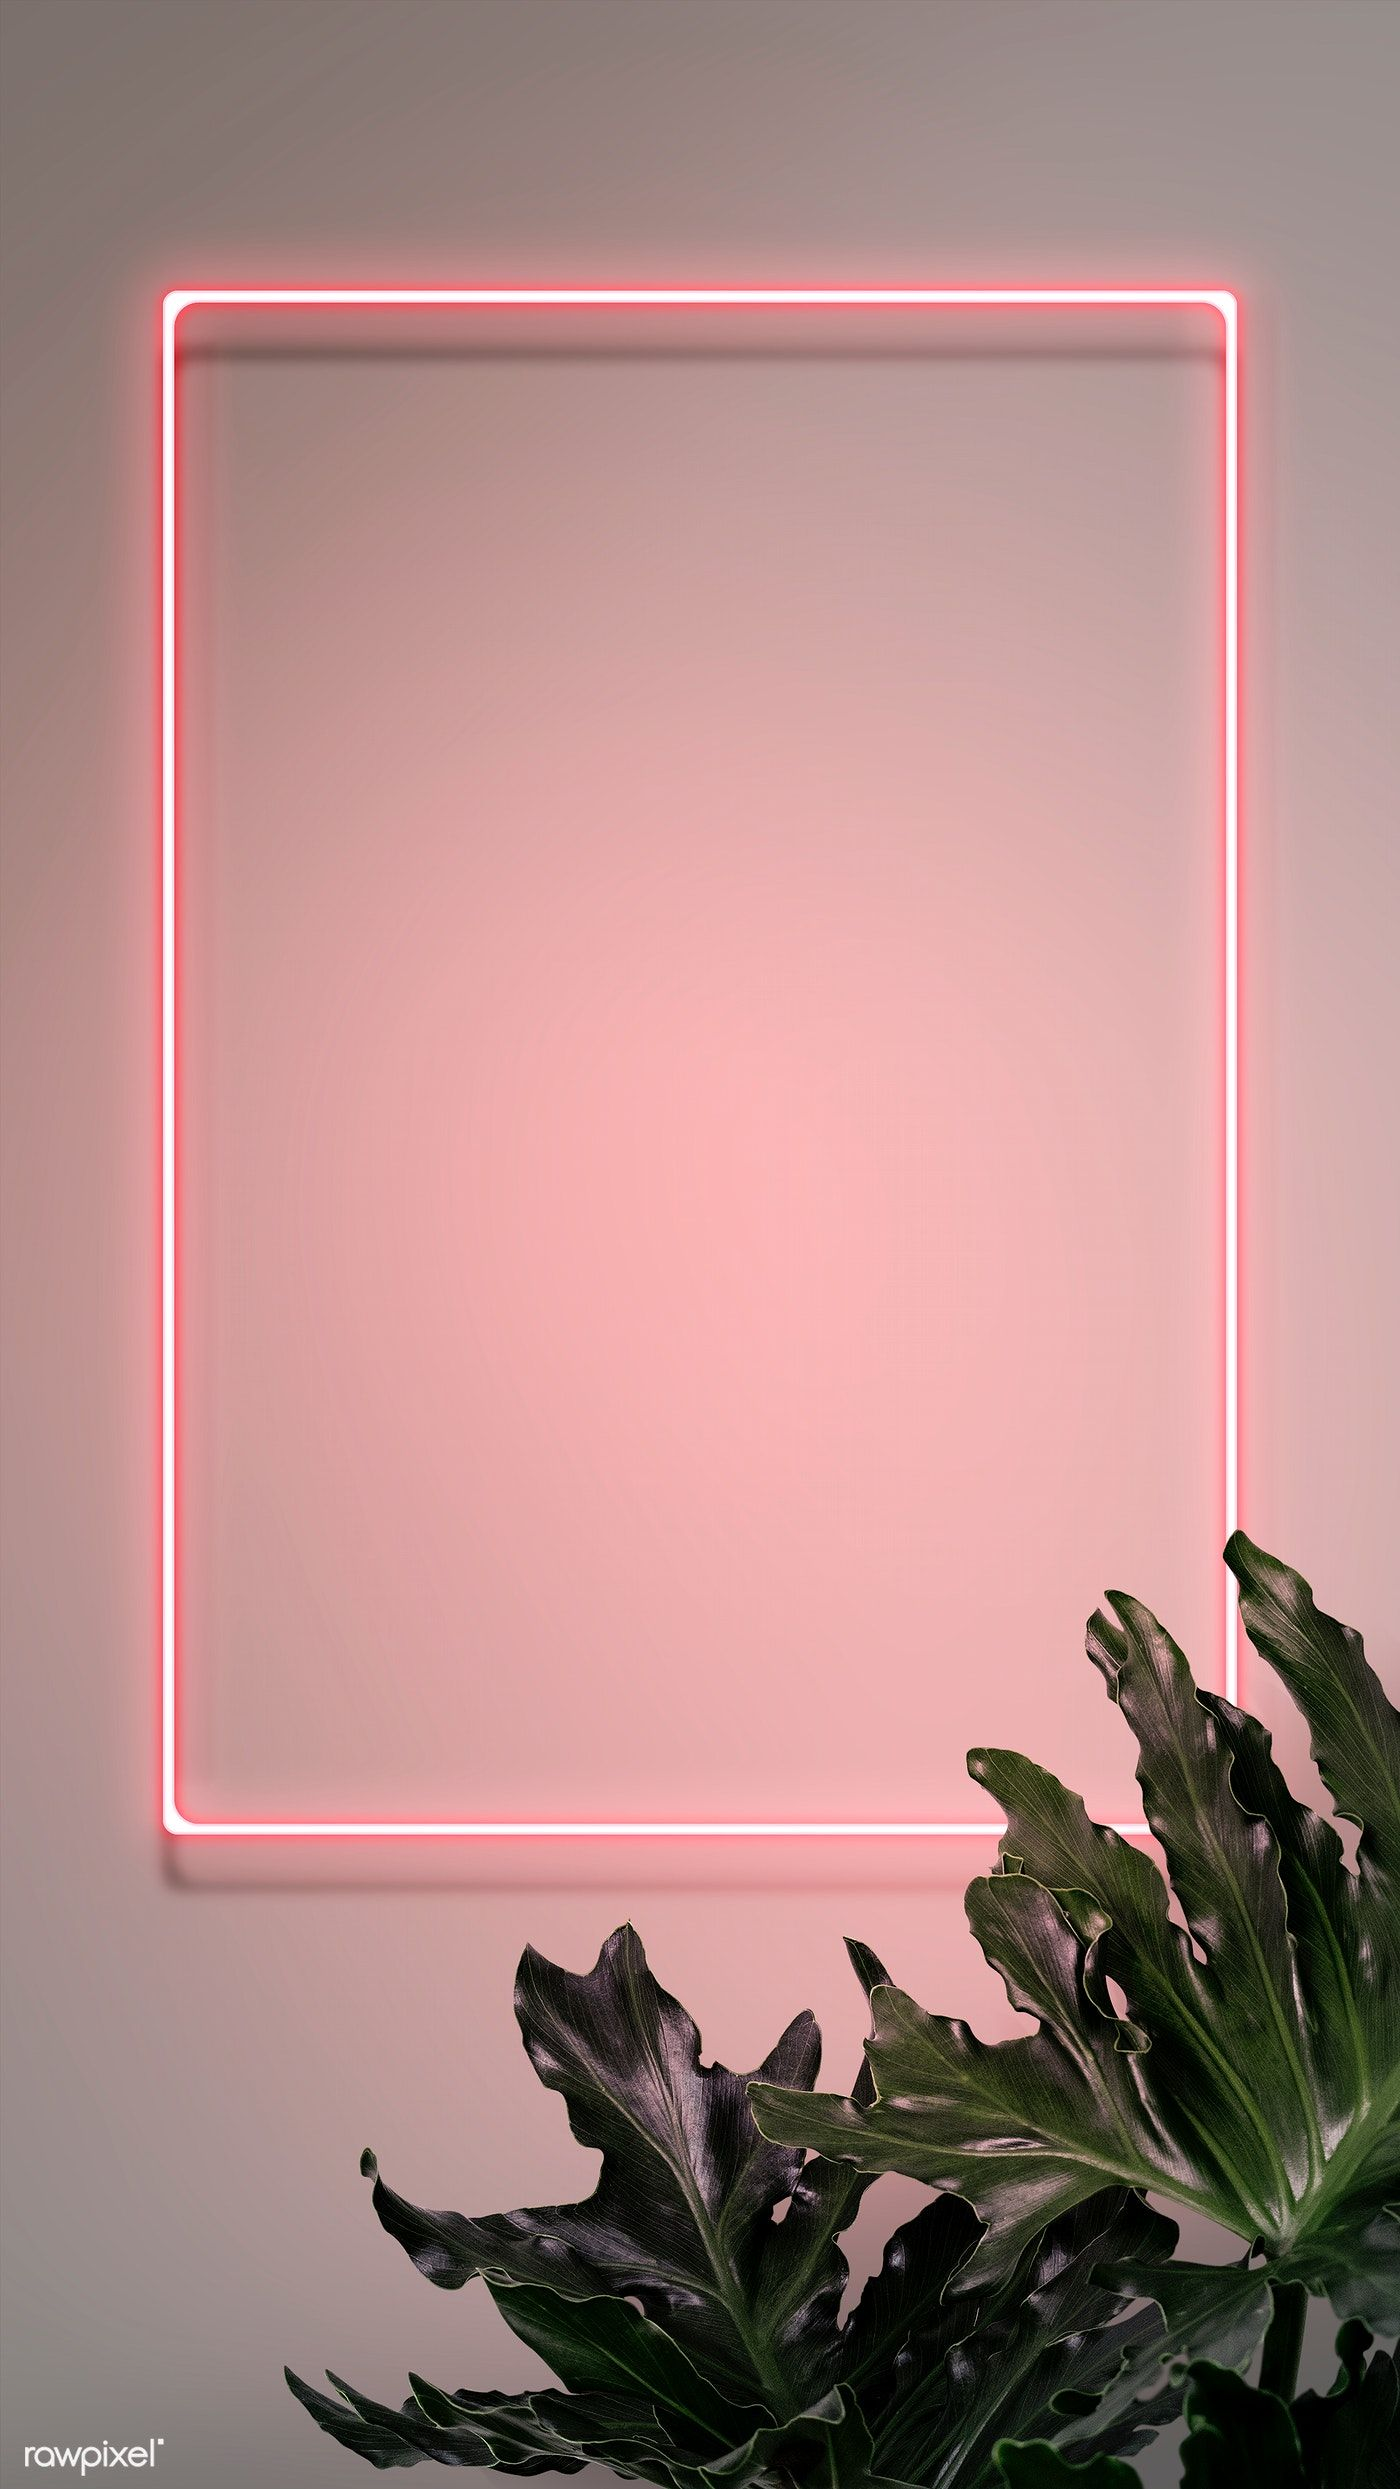 Neon red hello with a flamingo in a frame | premium image by rawpixel.com